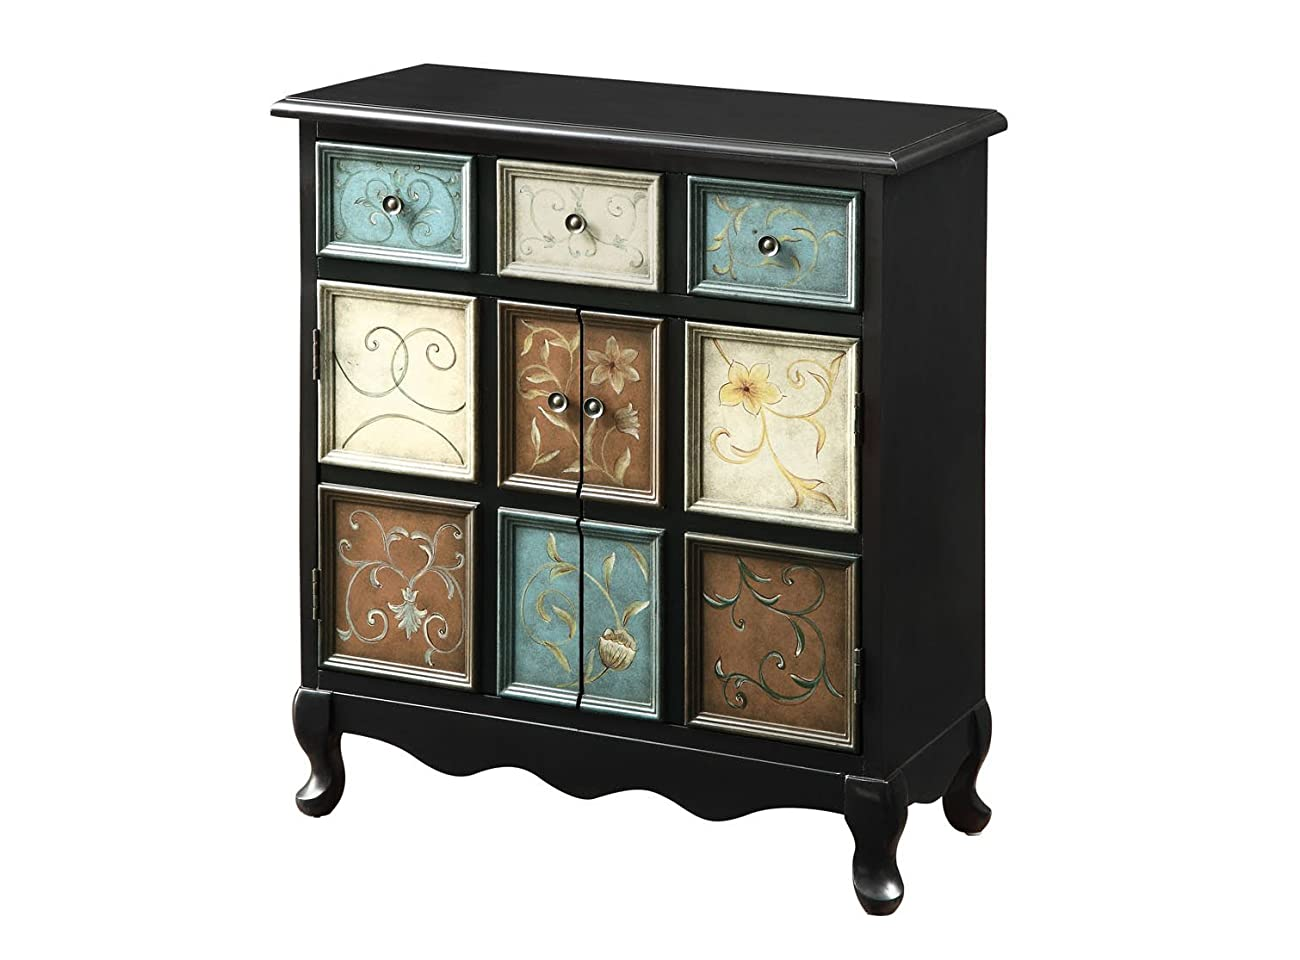 Monarch Apothecary Bombay Chest, Distressed Black/Multi-Color 1